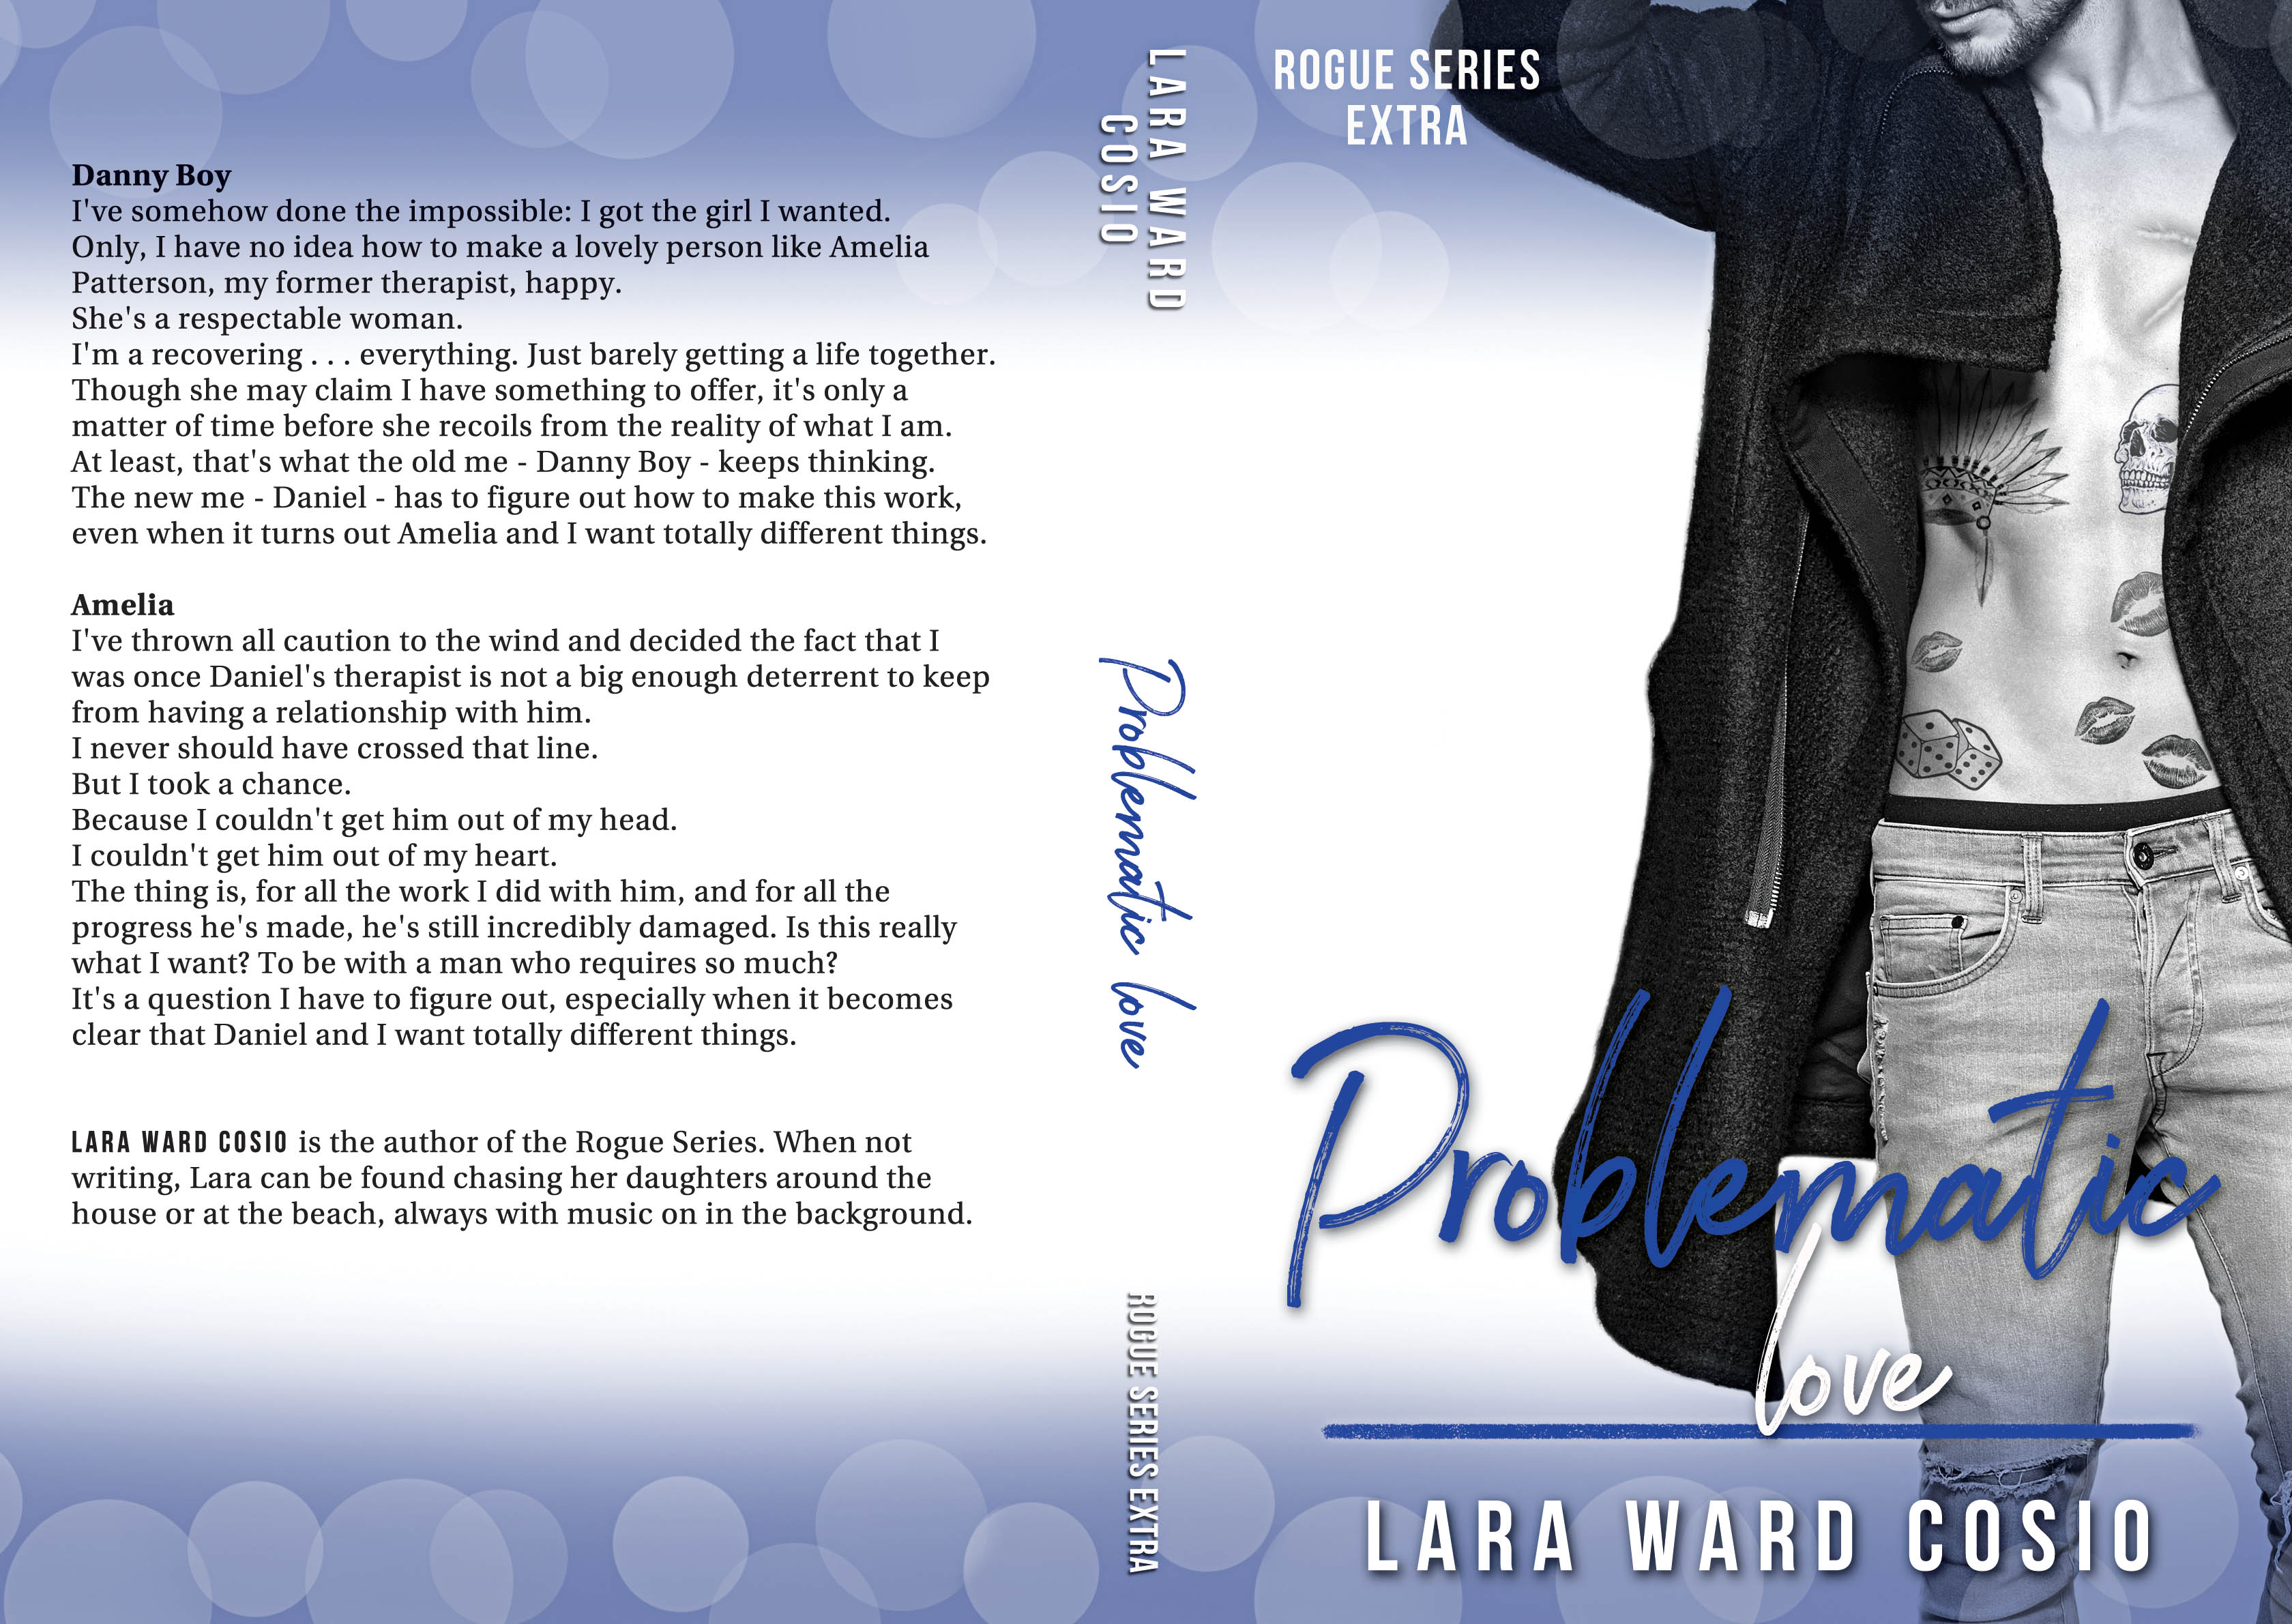 Problematic Love Paperback